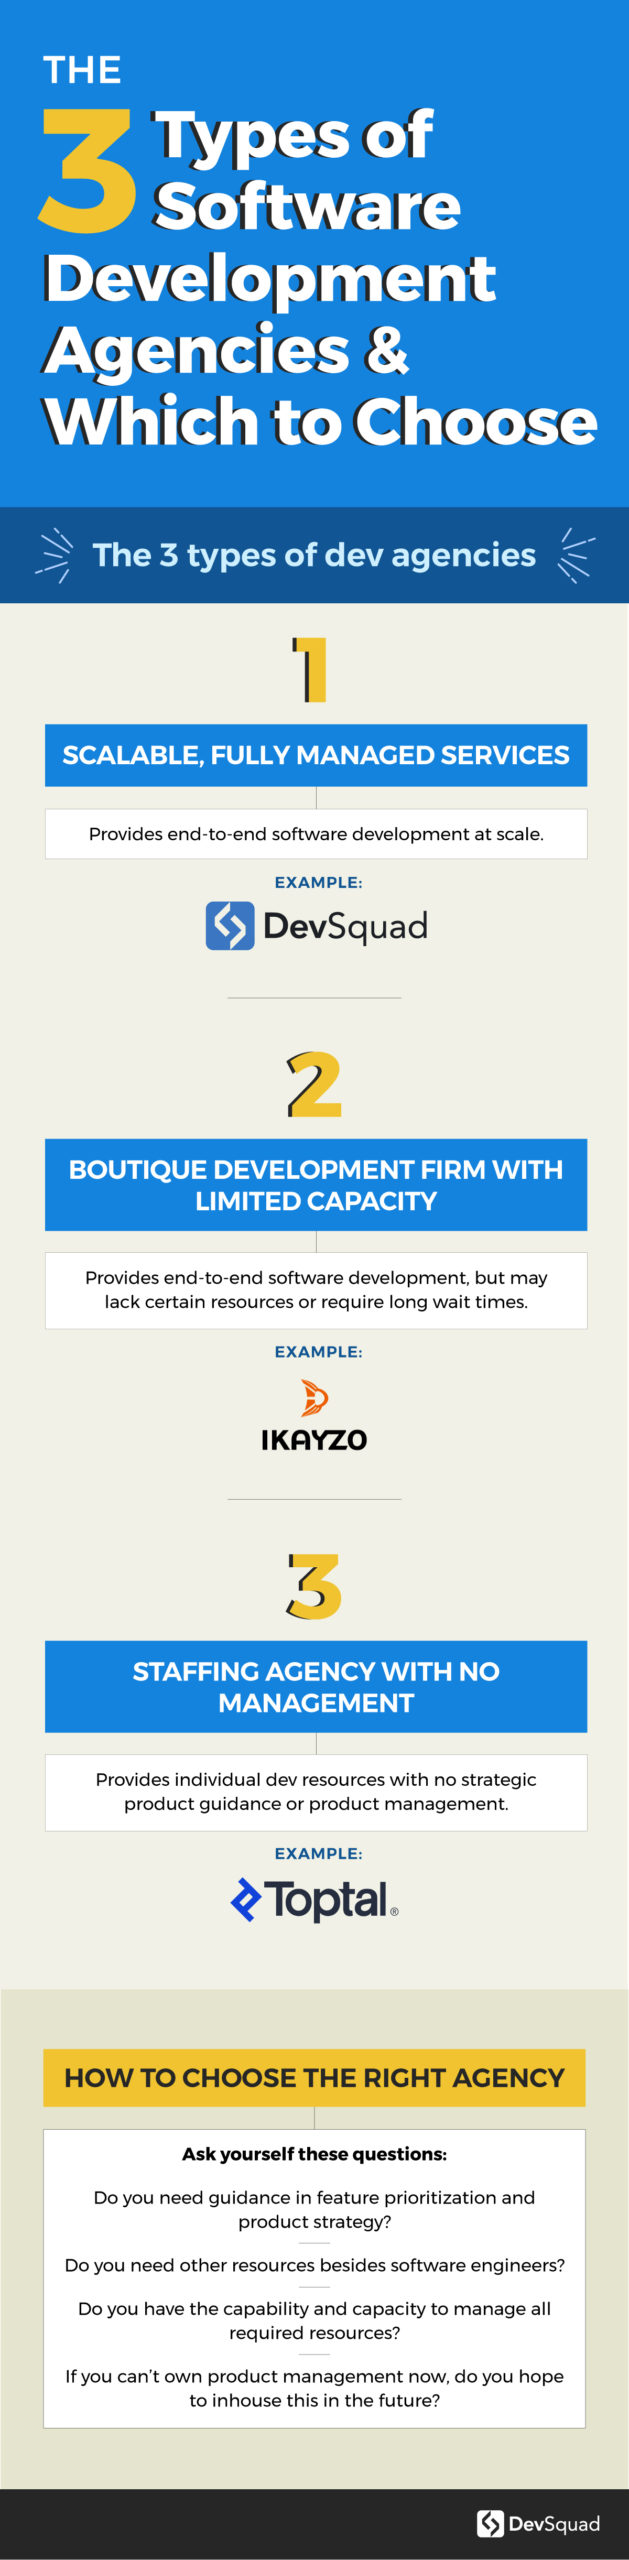 DevSquad Infographic The 3 Types of Software Development Agencies and Which to Choose v1 scaled